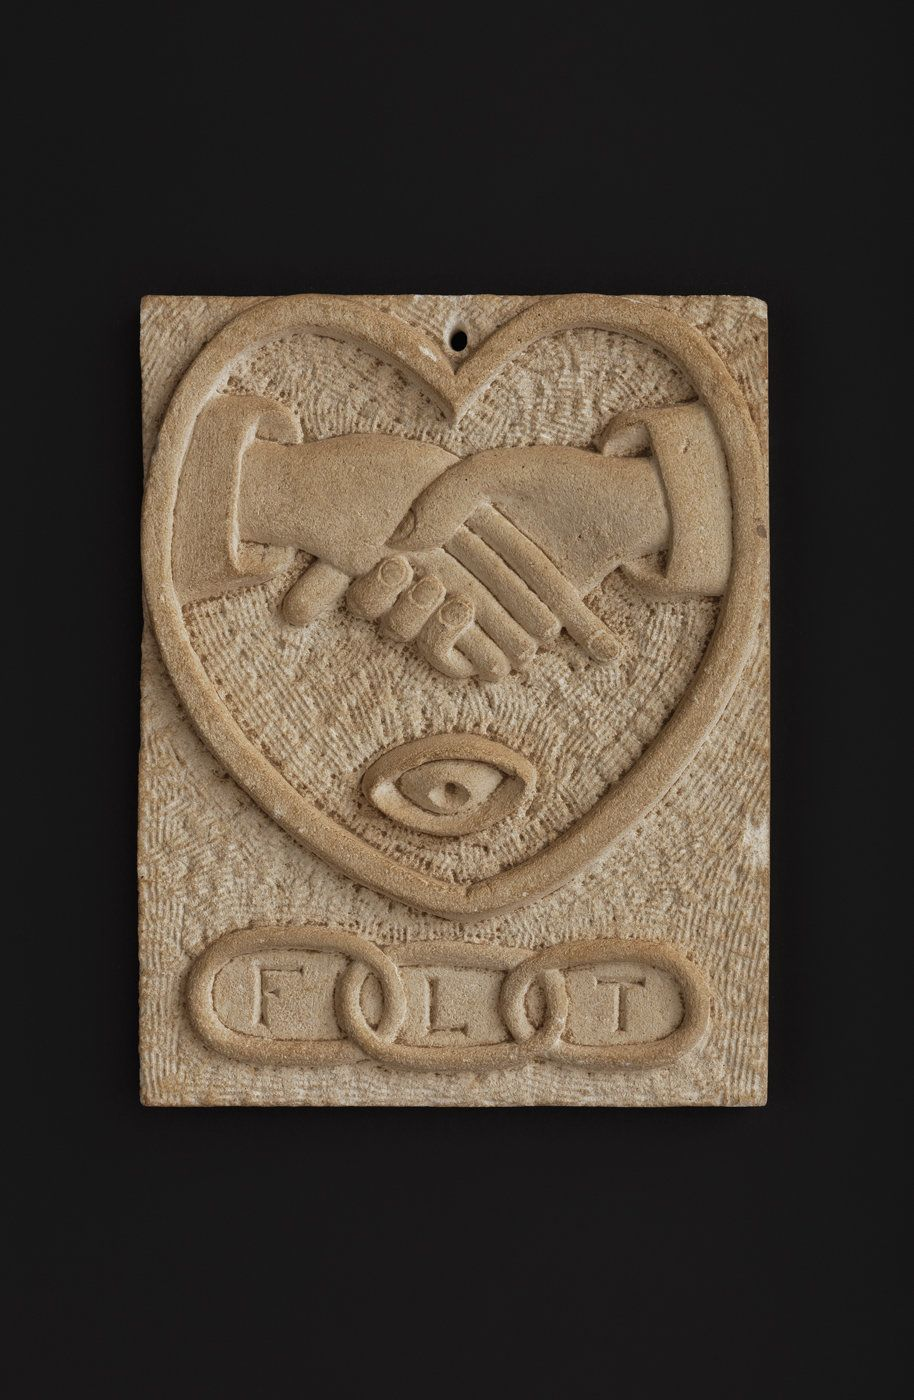 The captivating imagery of americas oldest secret societies independent order of odd fellows plaque by unknown artist circa 1860 1900 photo by jose andres ramirez buycottarizona